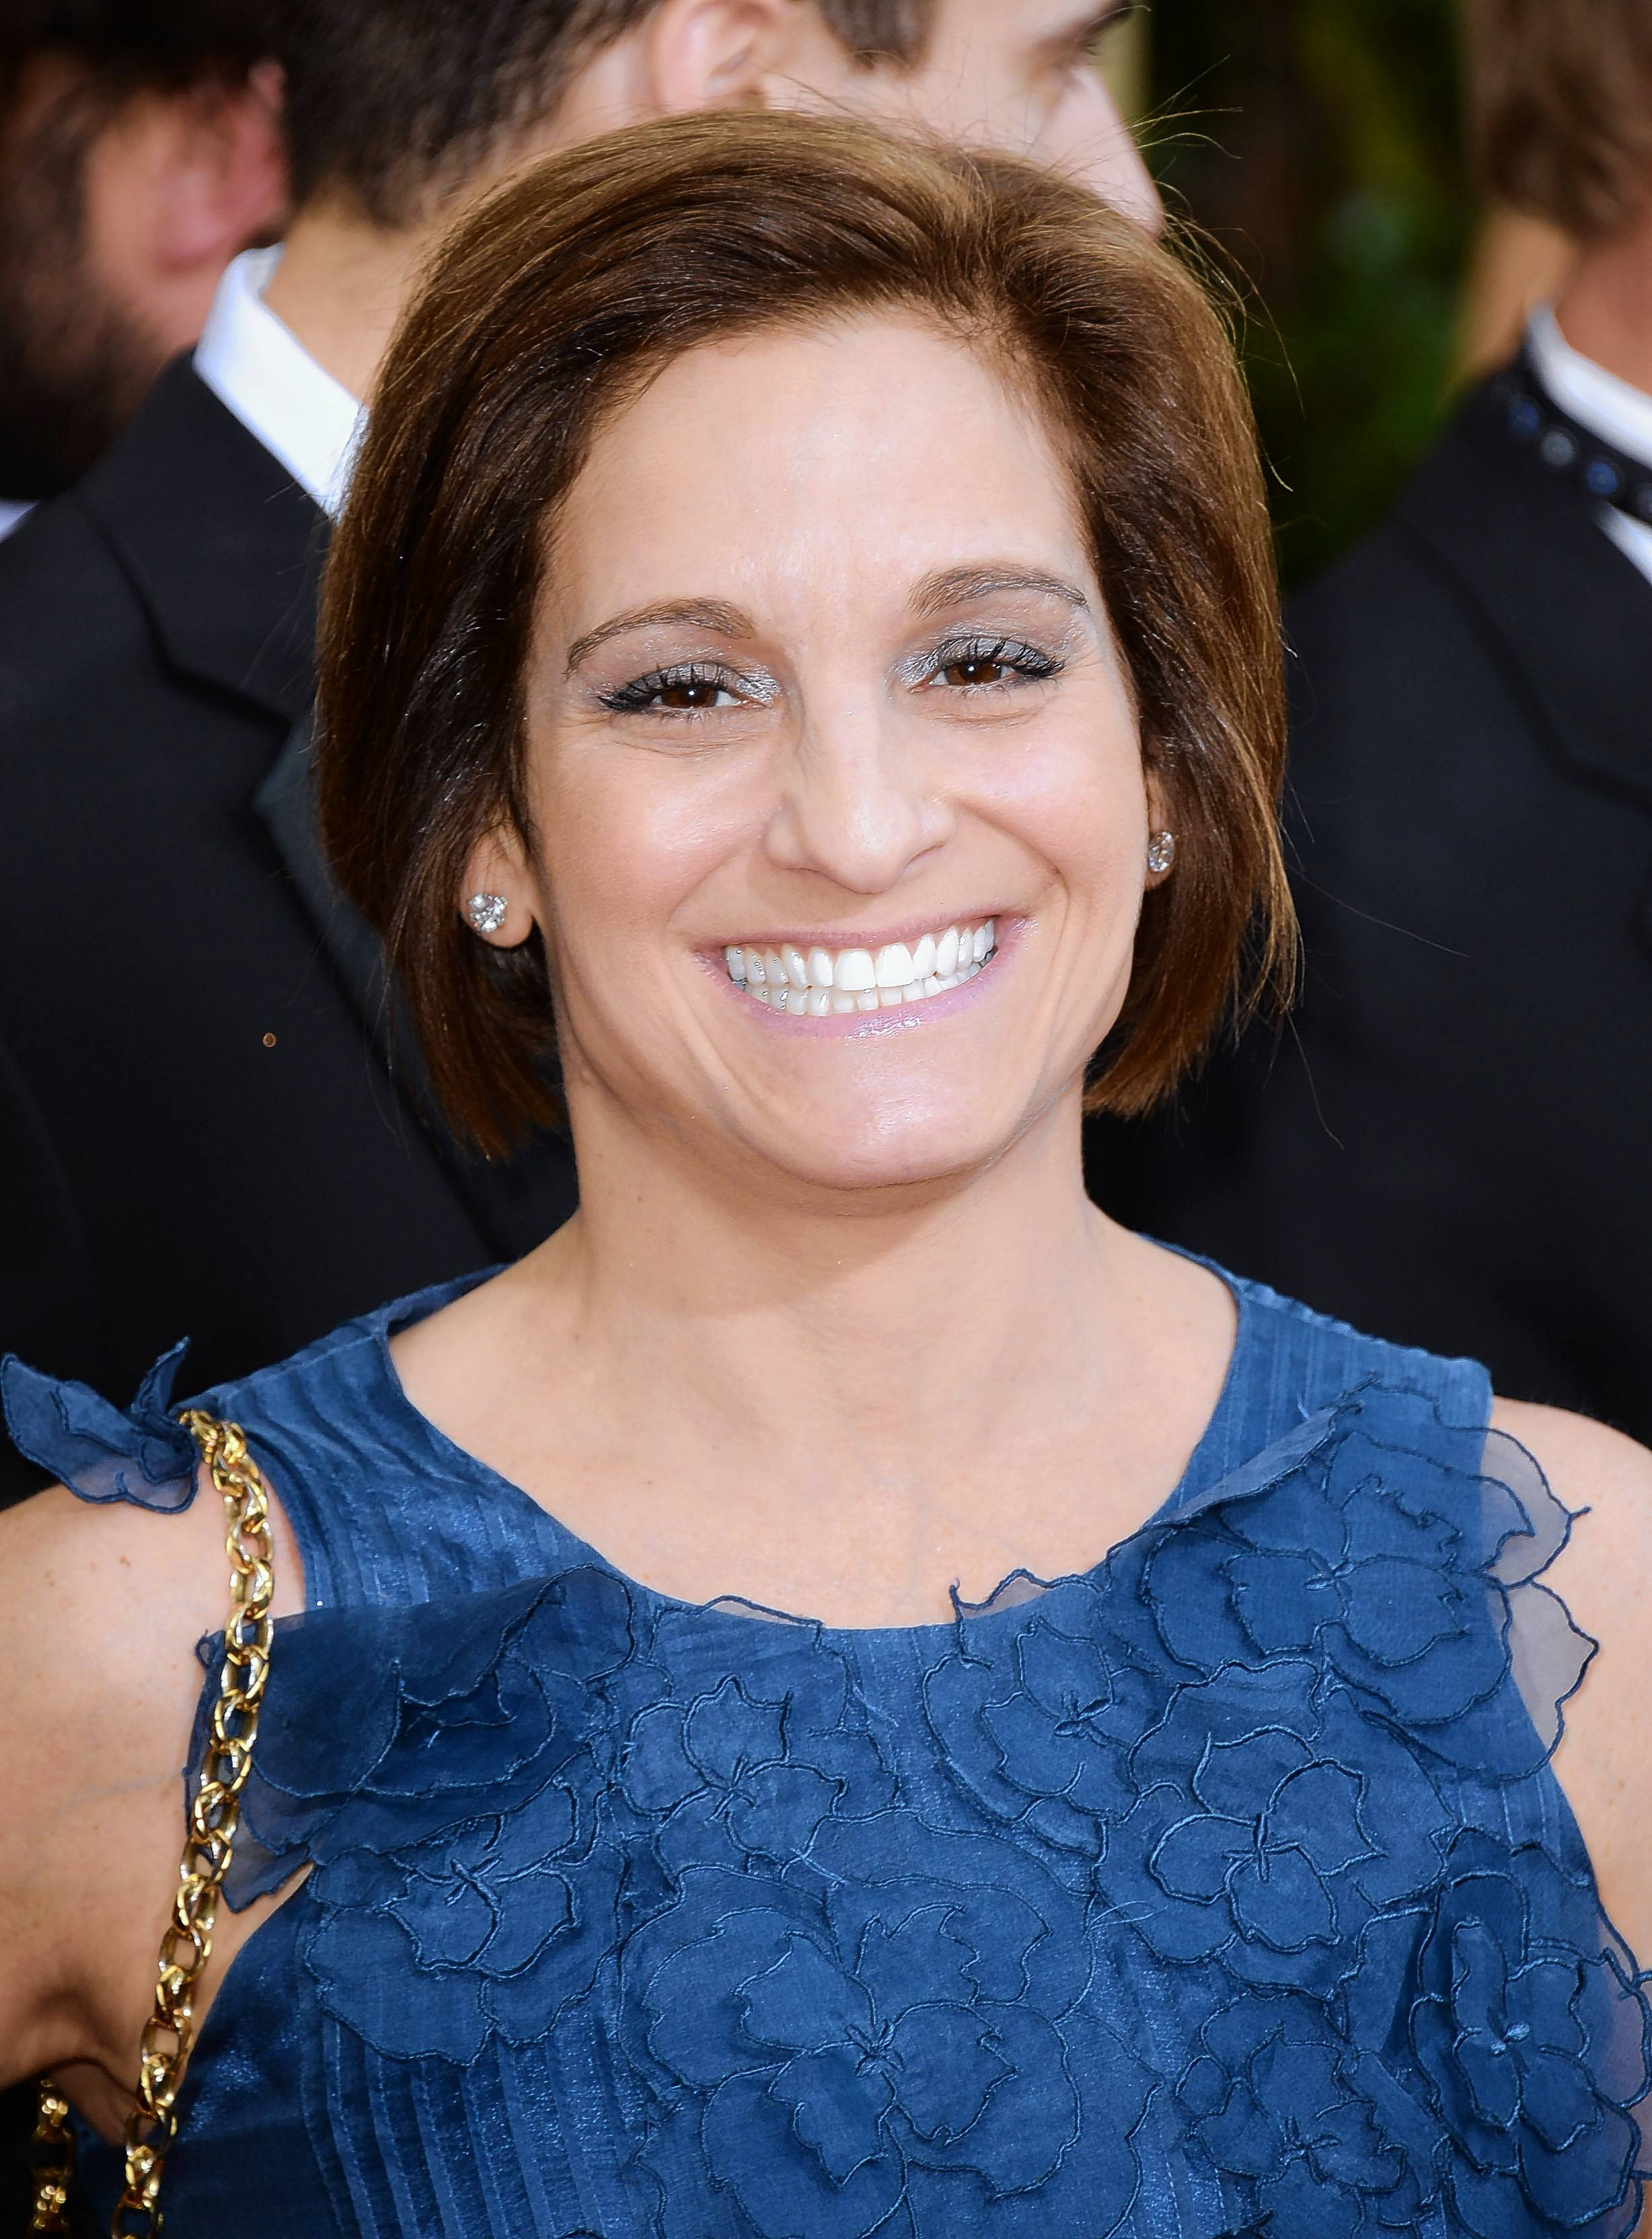 Olympic gold medalist Mary Lou Retton will speak at Judson University's World Leaders Forum Inspirational Series Oct. 10. Tickets are on sale.